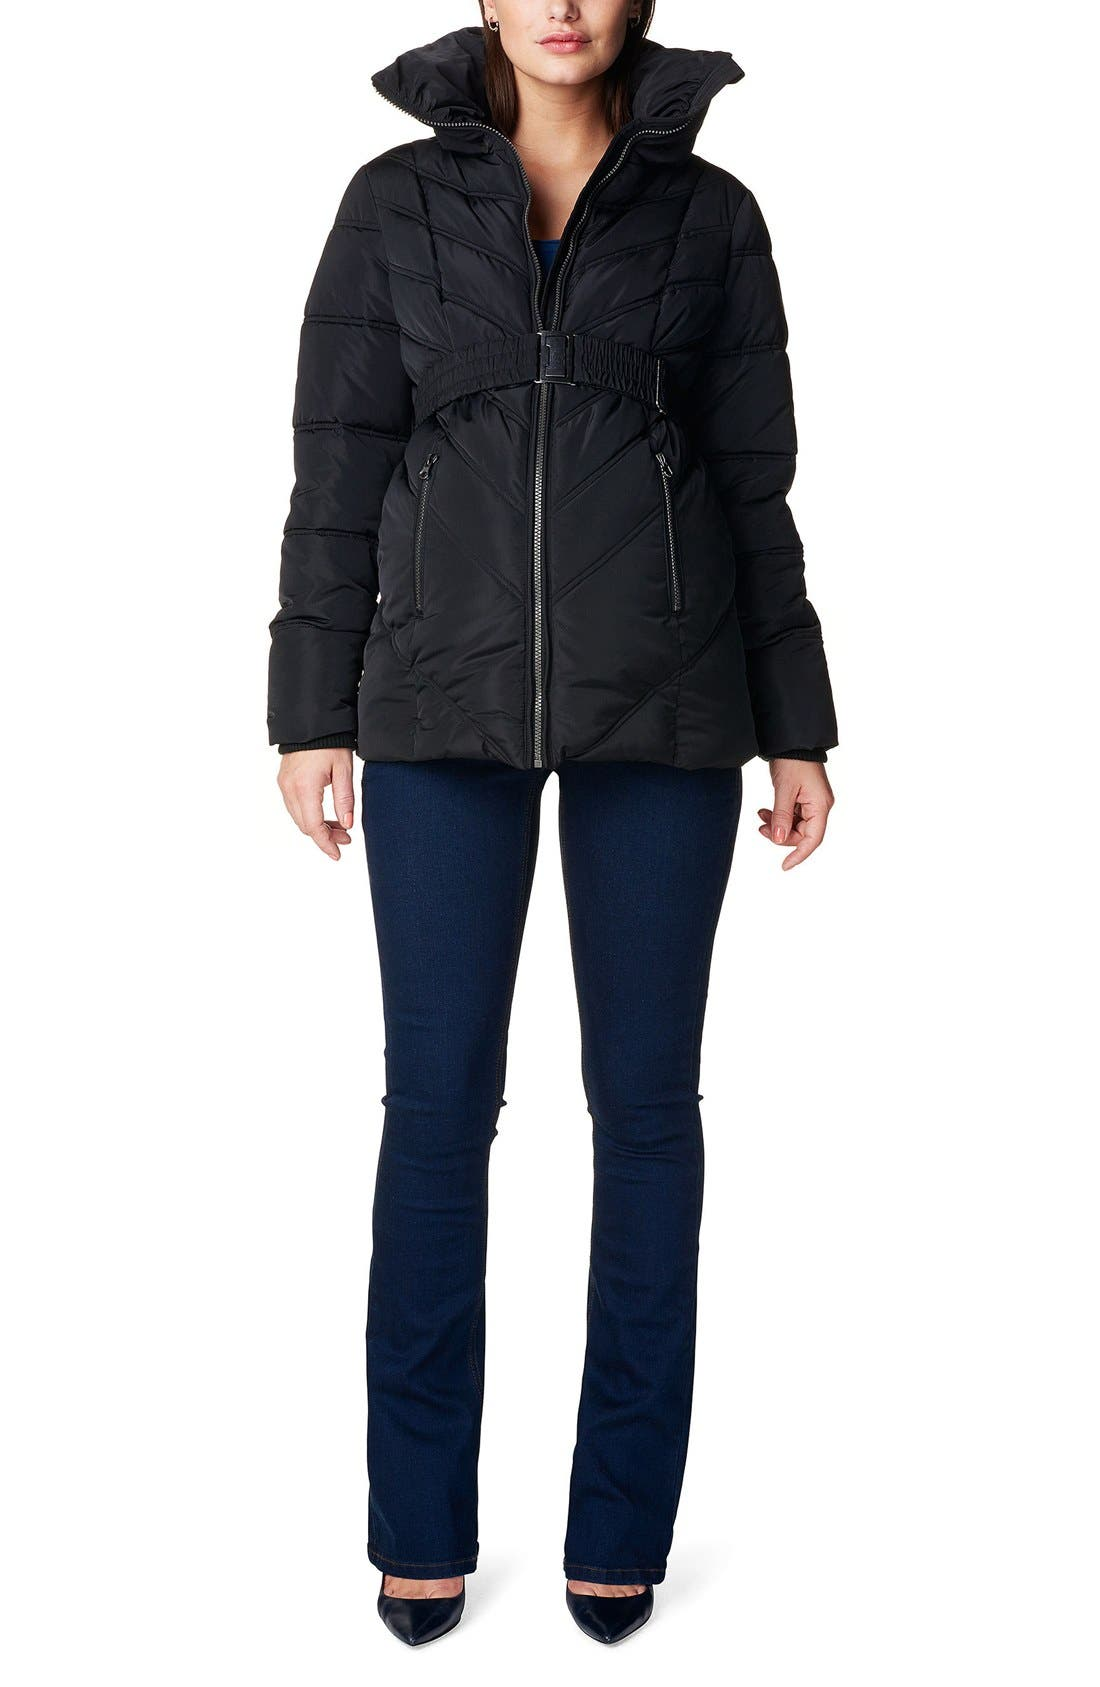 NOPPIES 'Lene' Quilted Maternity Jacket, Main, color, BLACK